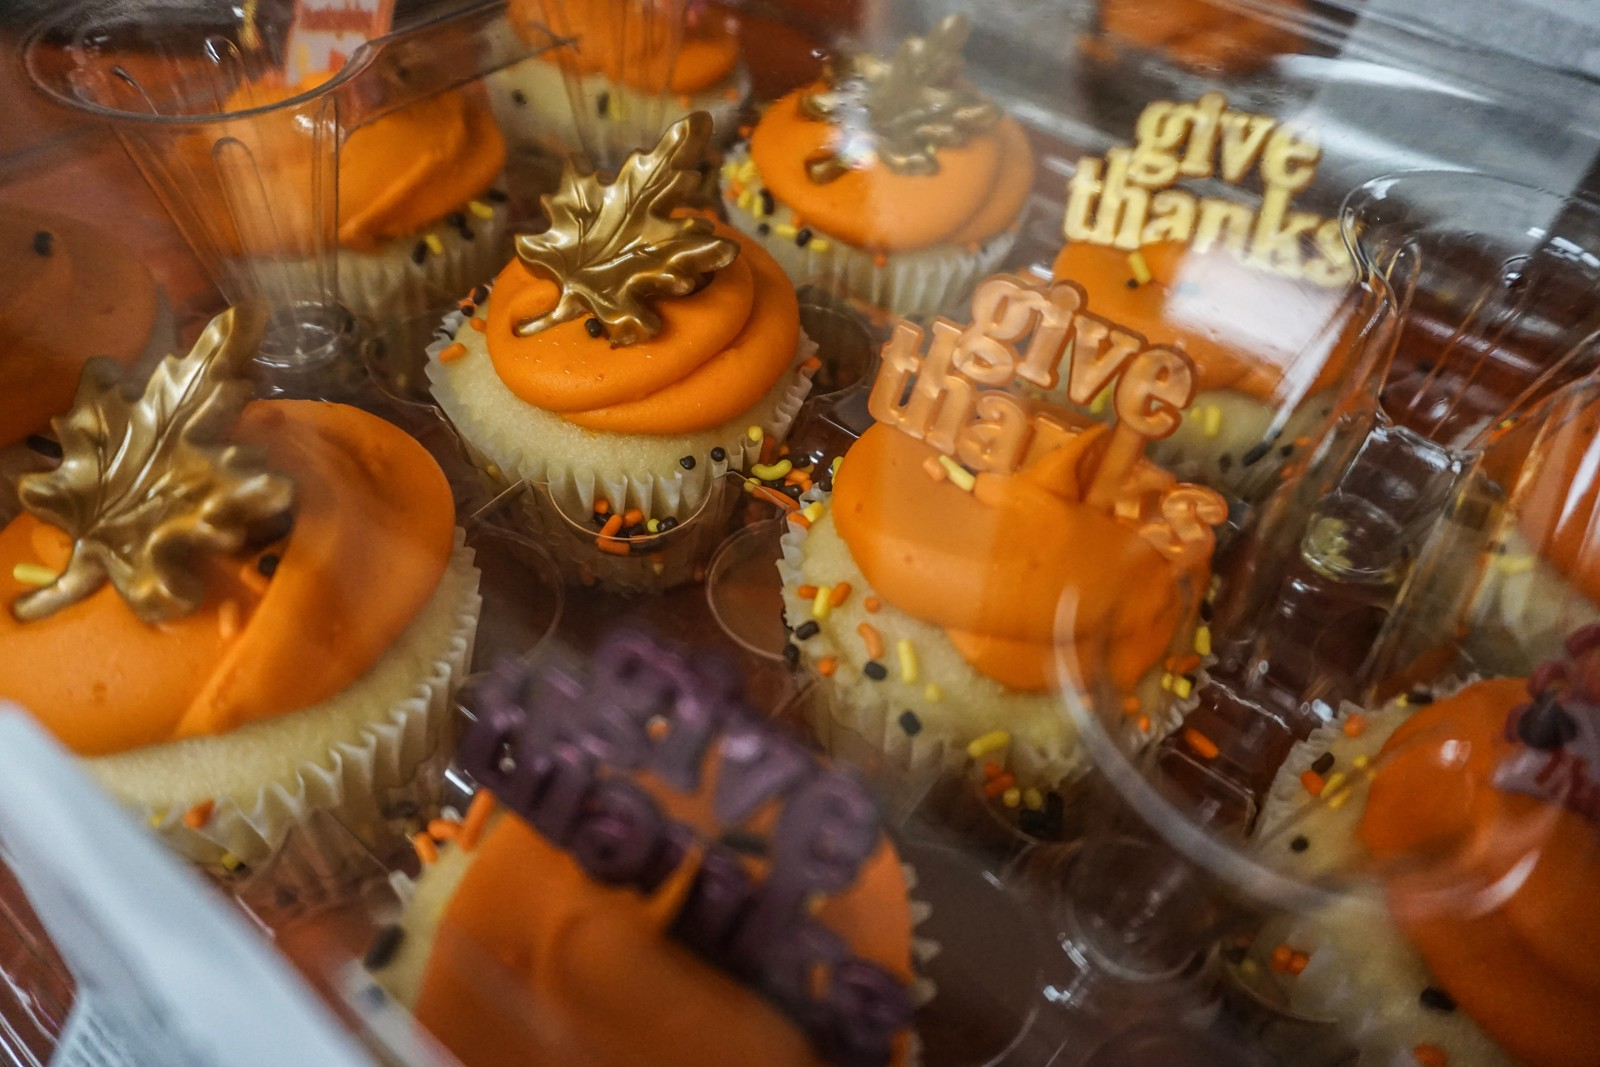 Some of the treats, like these cupcakes, were Thanksgiving themed.